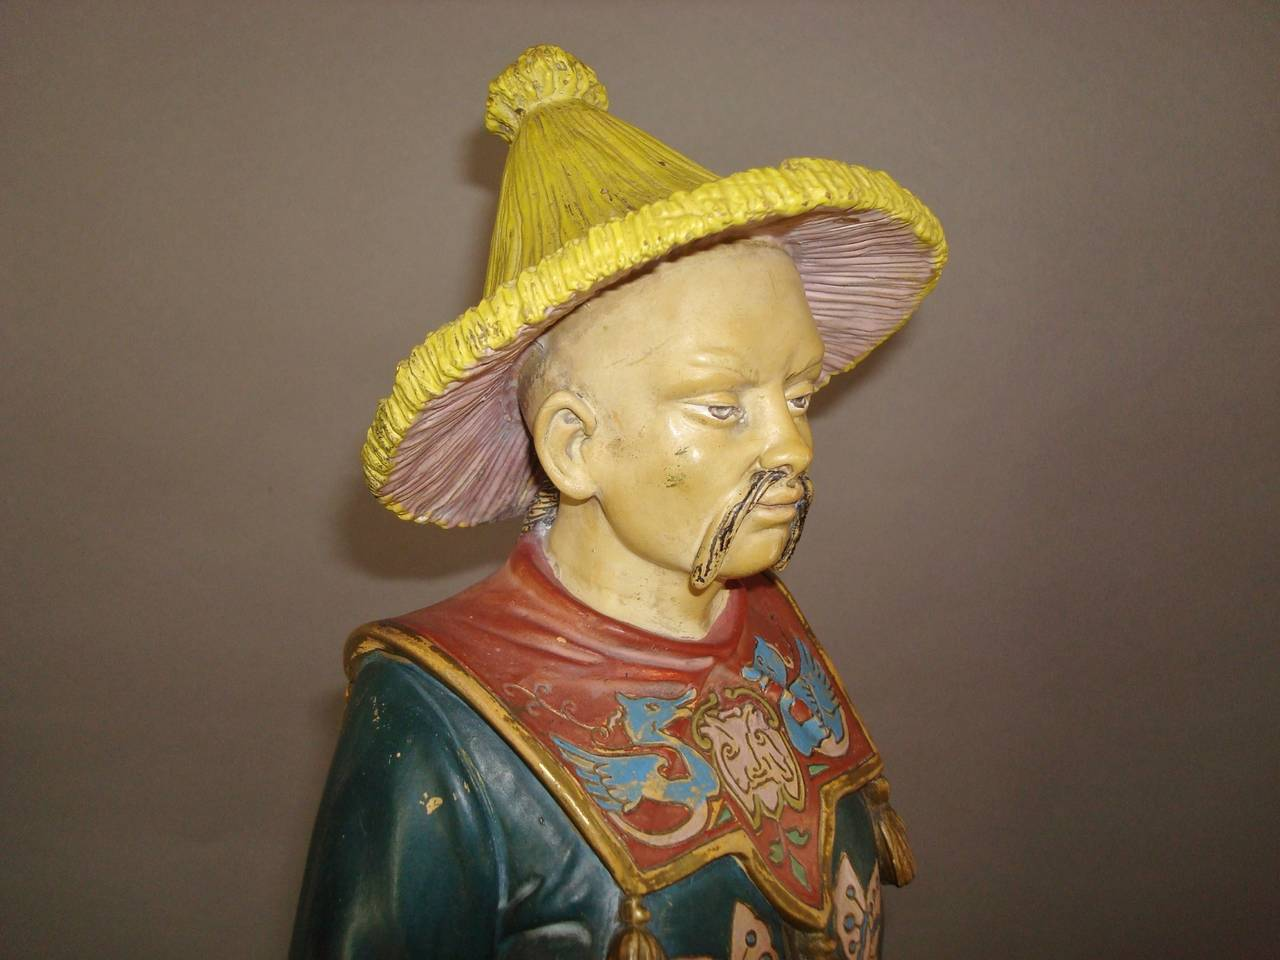 Late 19th Century 19th century Decorated Terracotta China Man Statue For Sale